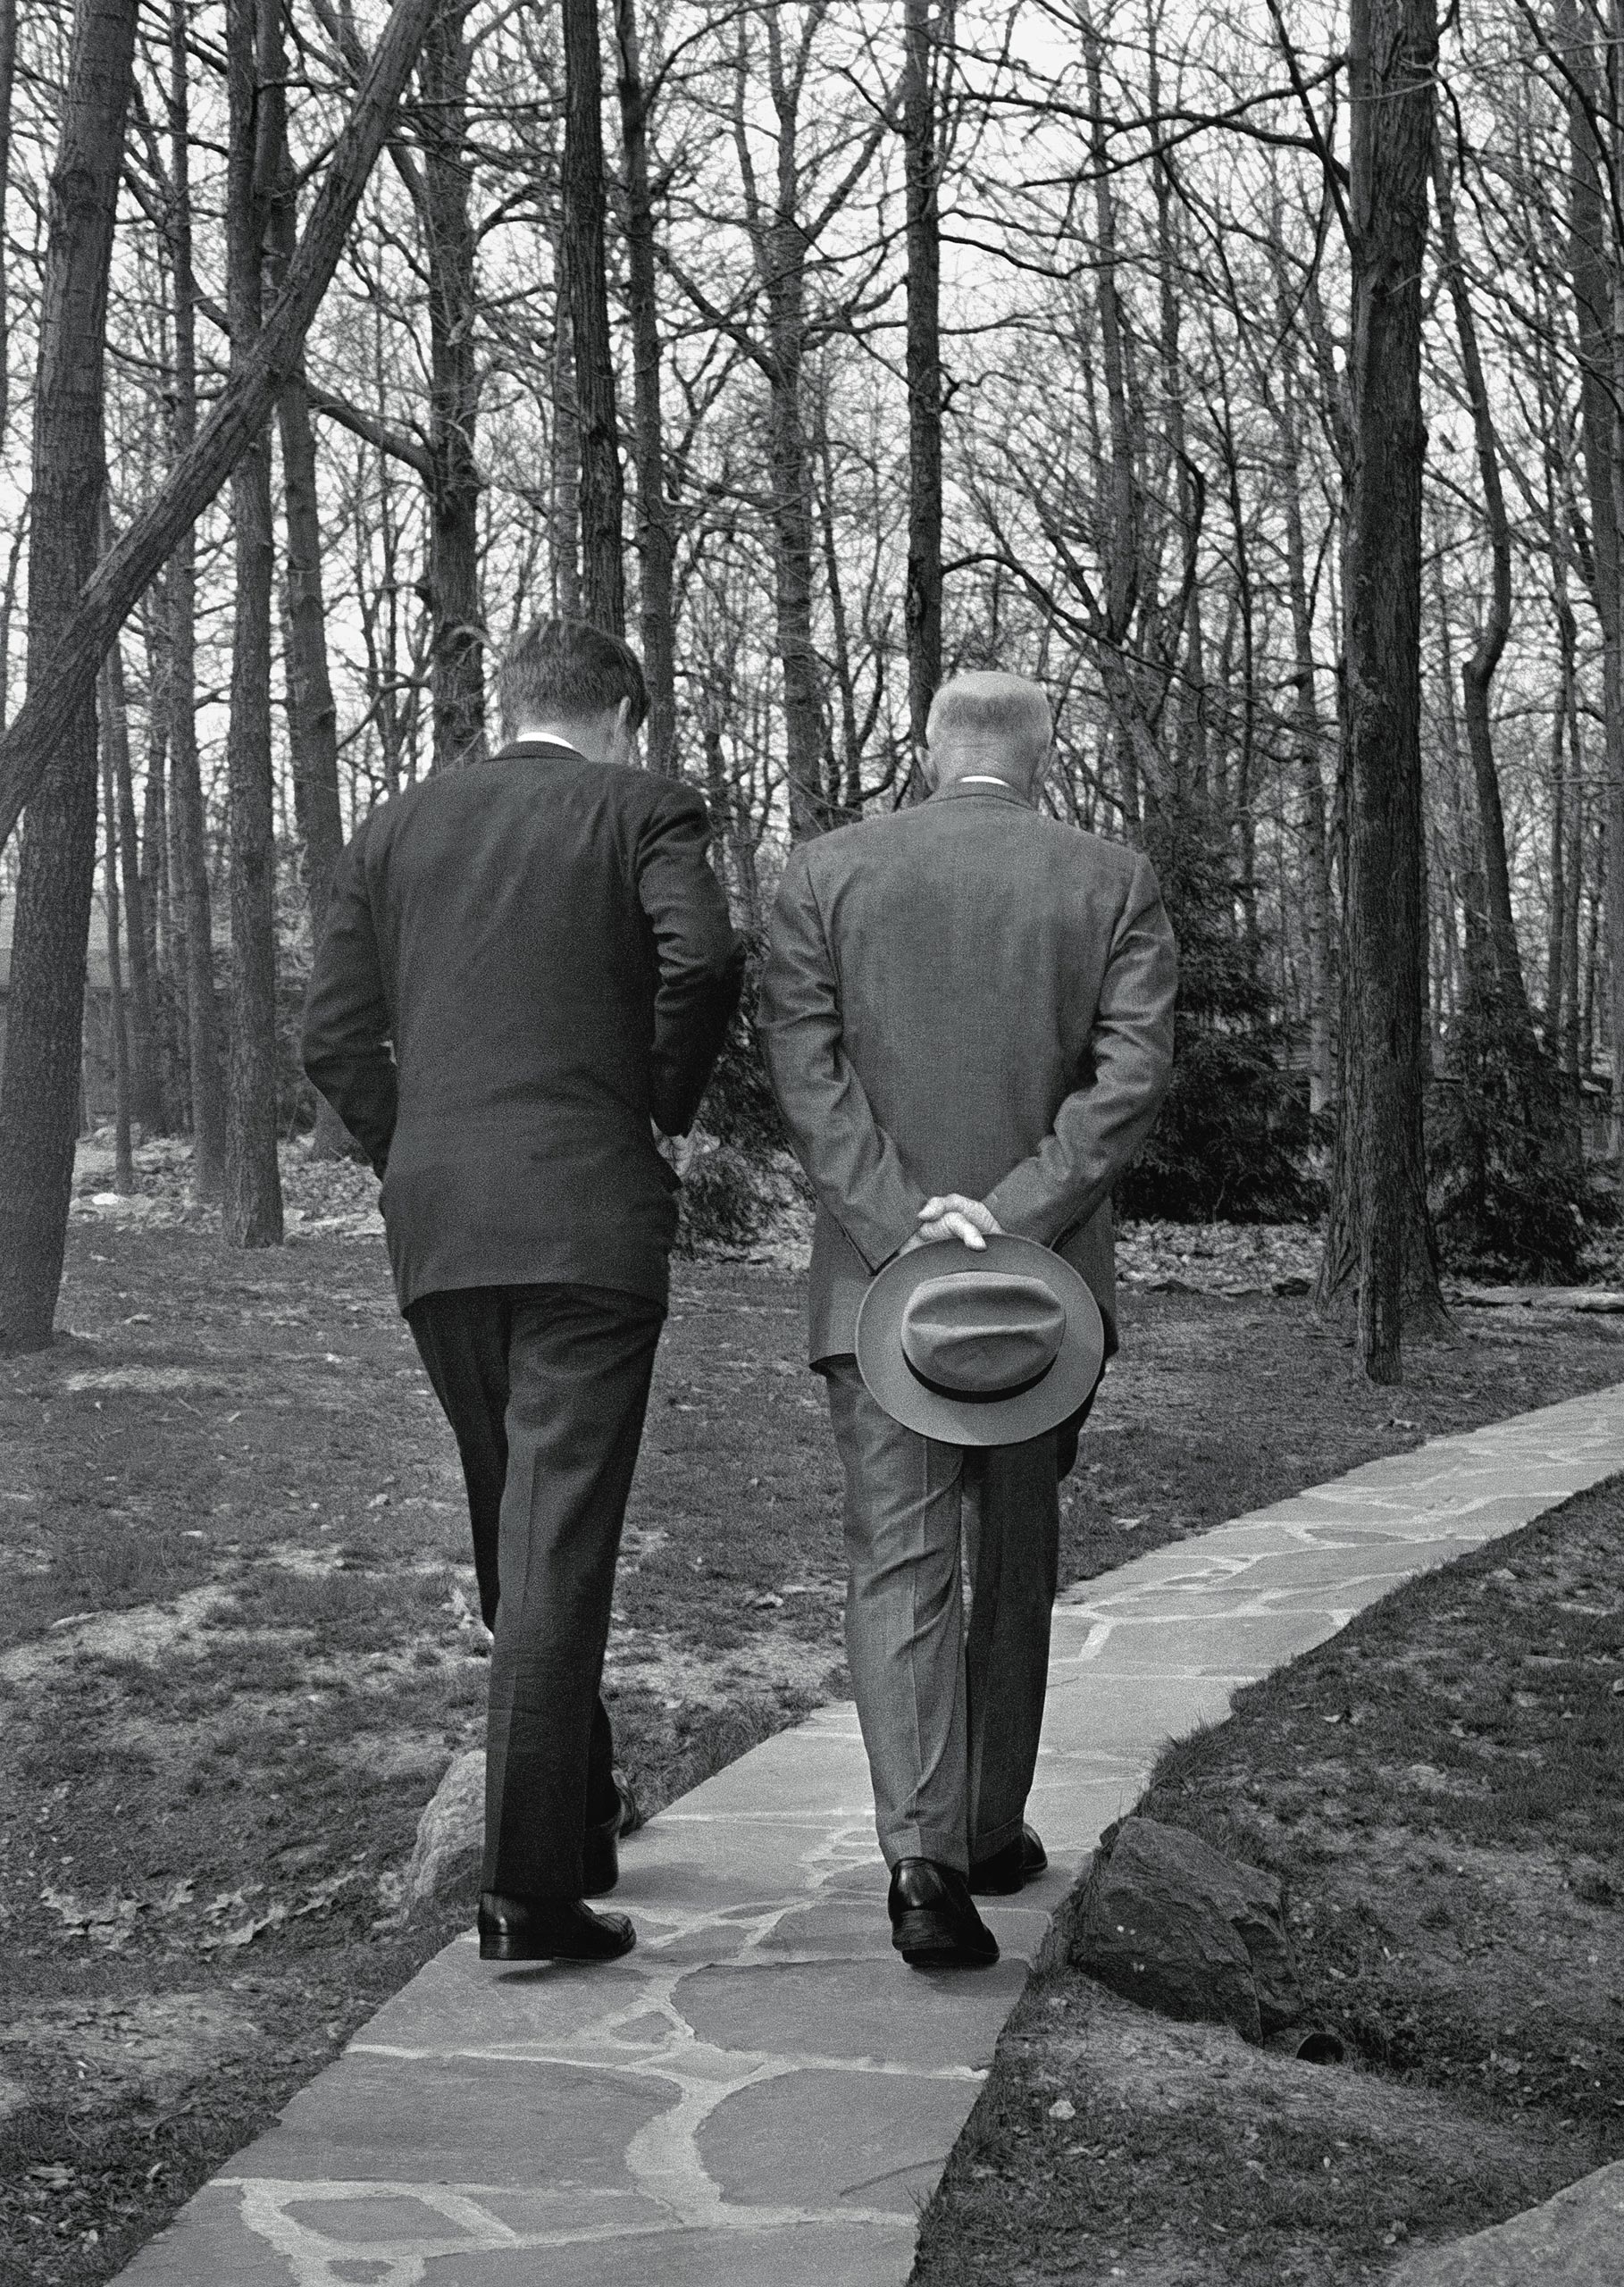 With their heads bowed, President John F. Kennedy, left, walks along a path at Camp David near Thurmont, Md., with former President Dwight D. Eisenhower on April 22, 1961, as the two met to discuss the Bay of Pigs invasion.